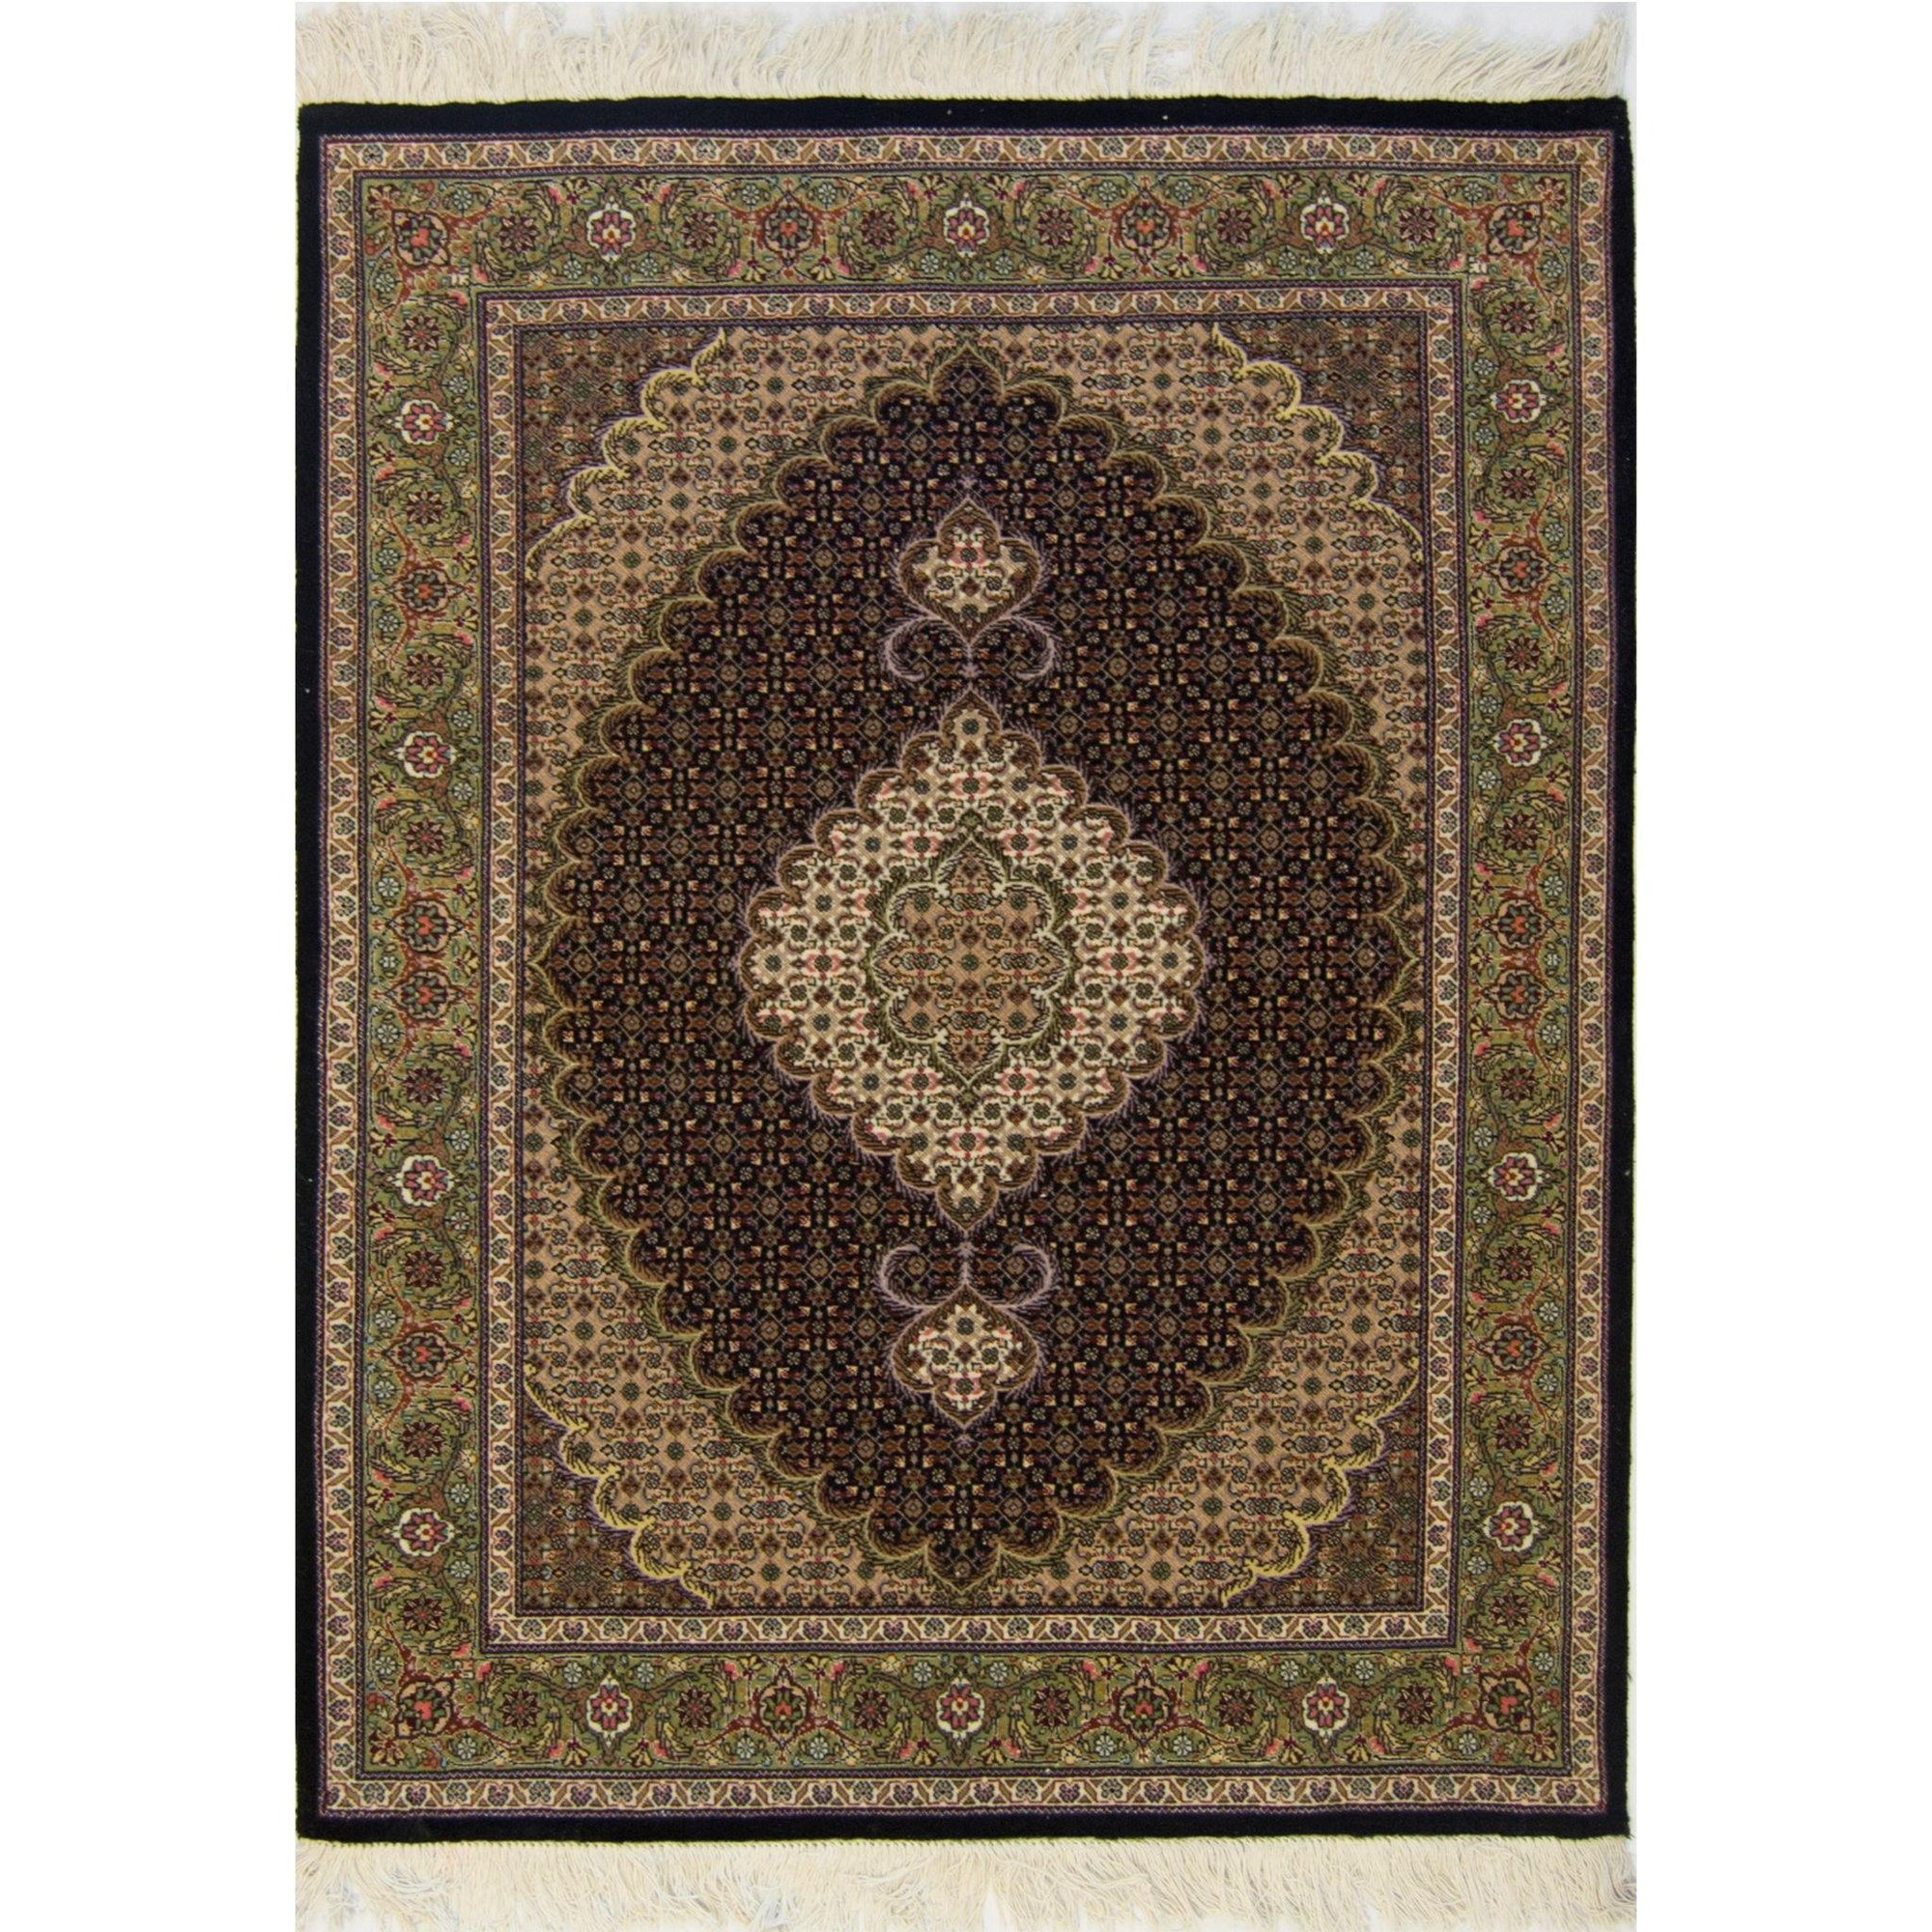 Super Fine Persian Wool and Silk Tabriz - Mahi Rug 107 cm x 157 cm Persian-Rug | House-of-Haghi | NewMarket | Auckland | NZ | Handmade Persian Rugs | Hand Knotted Persian Rugs